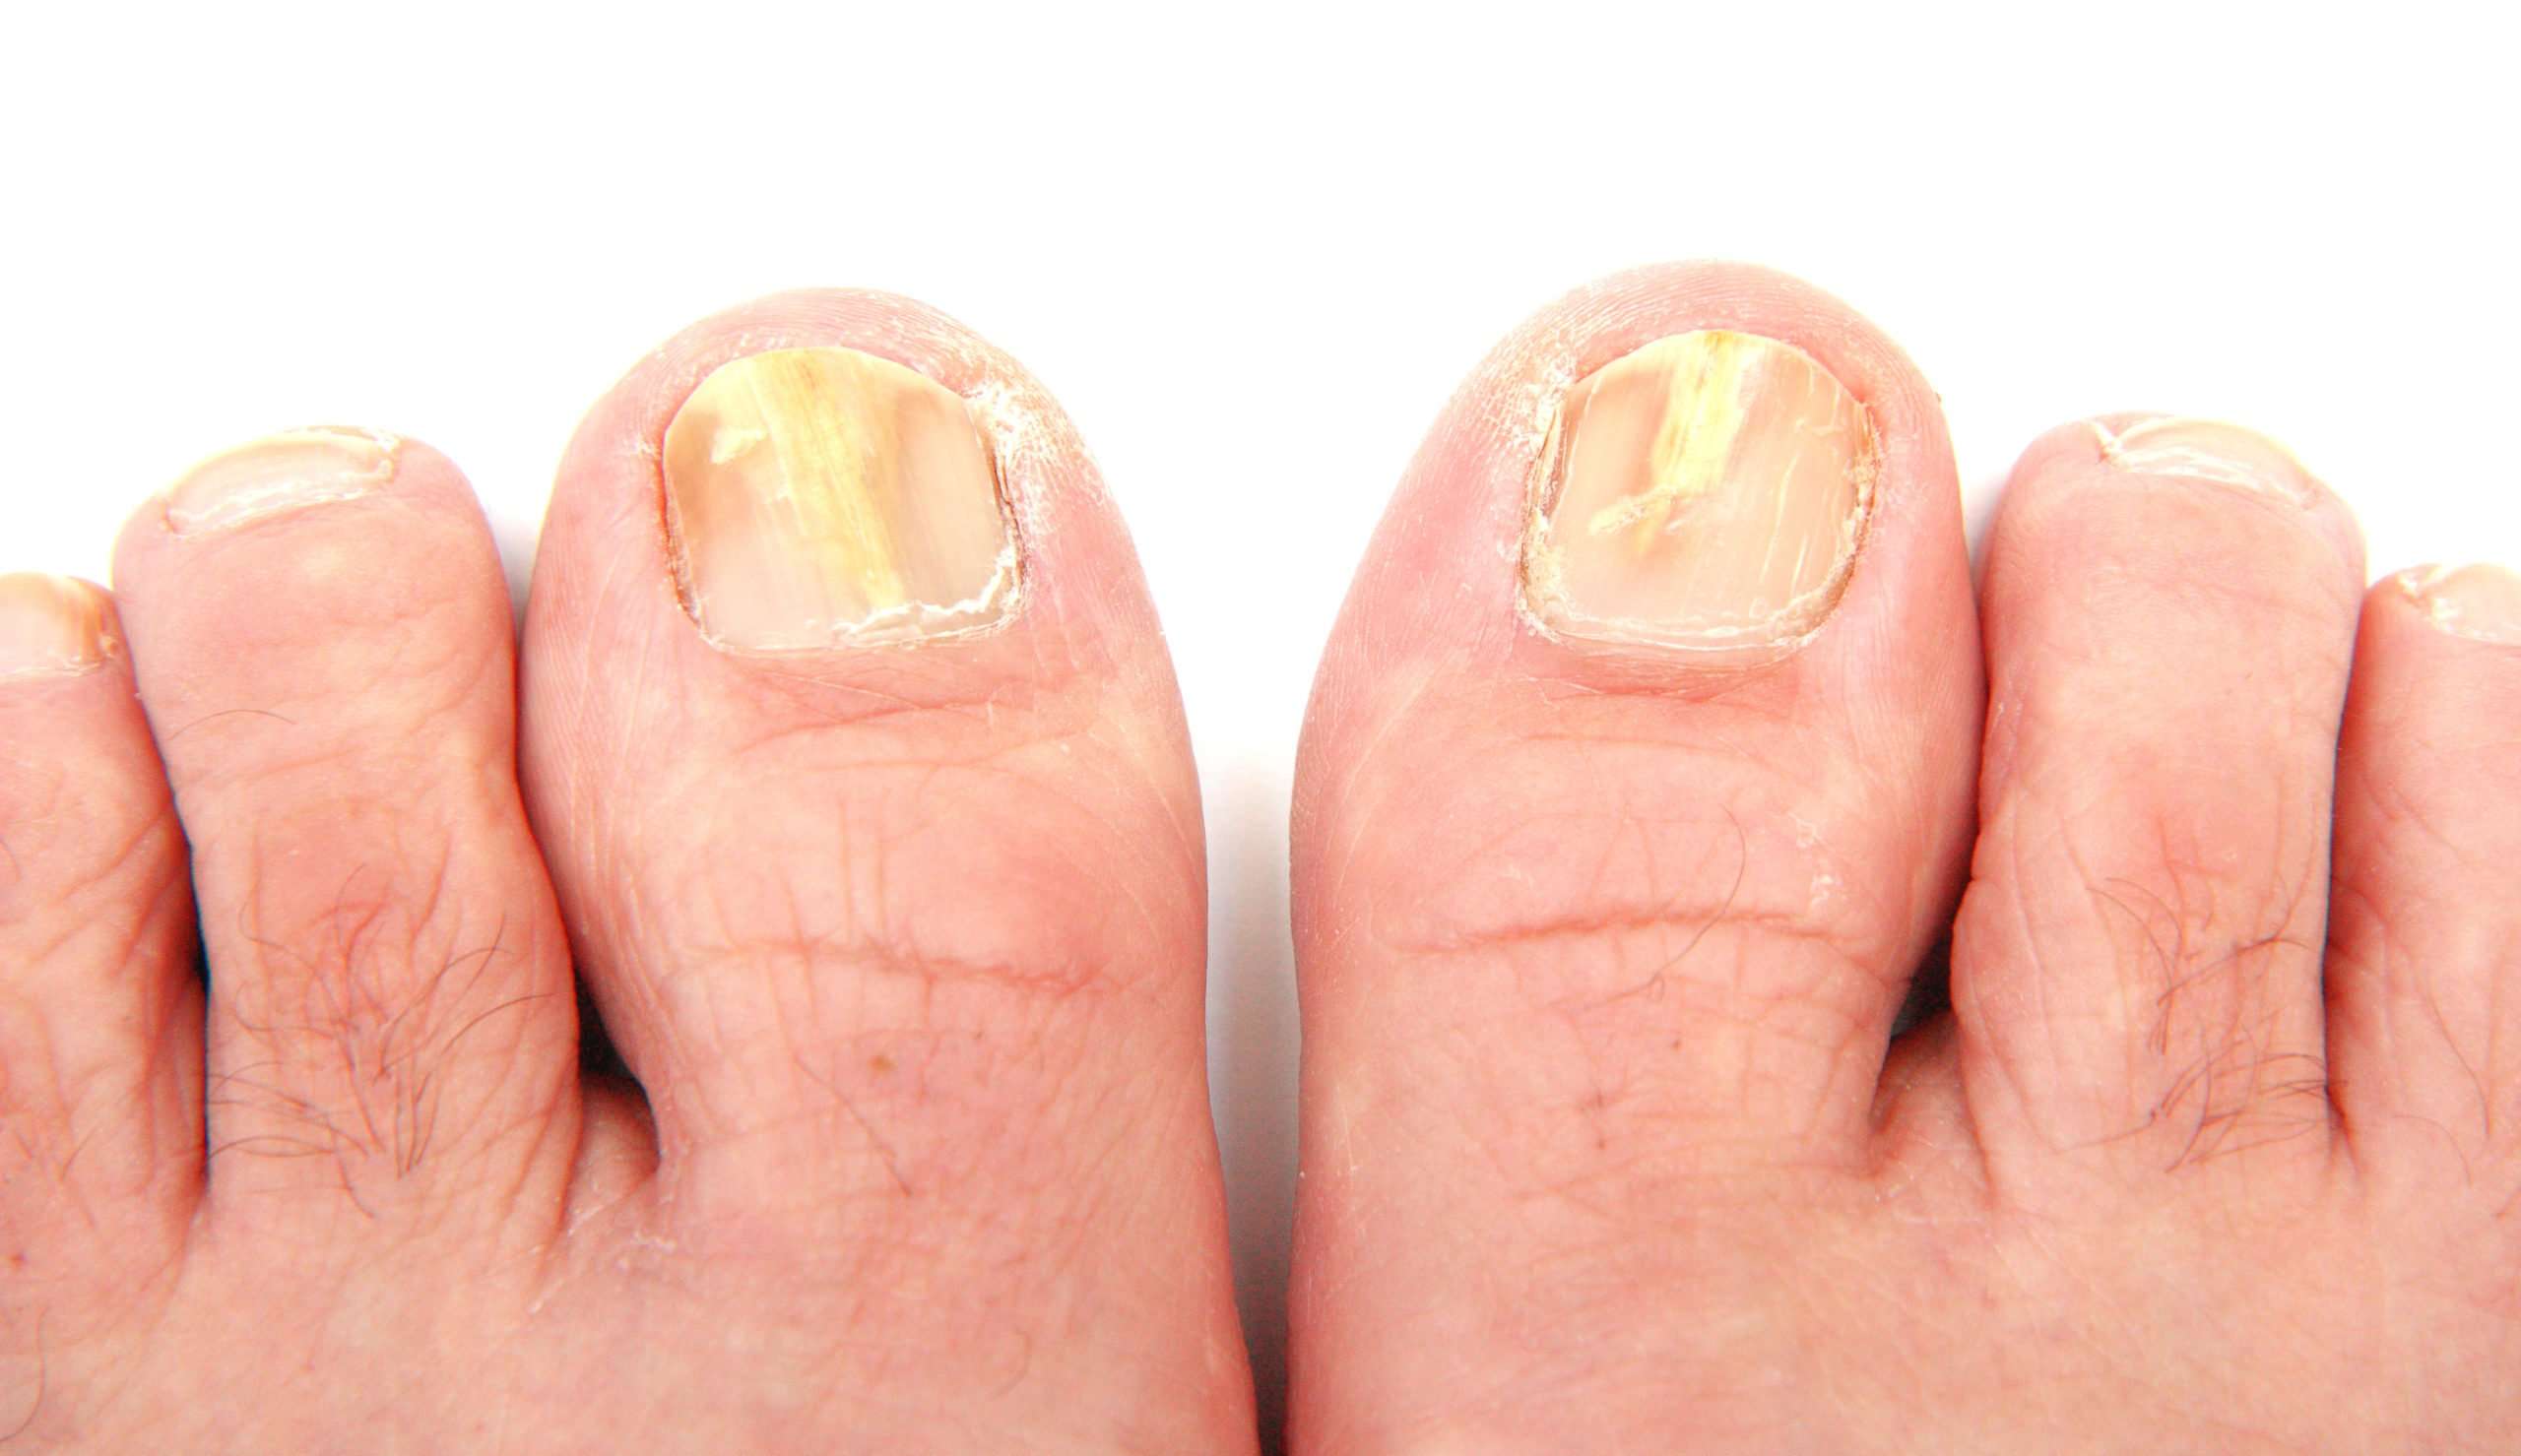 Nail fungus can be treated with turmeric and lemon juice